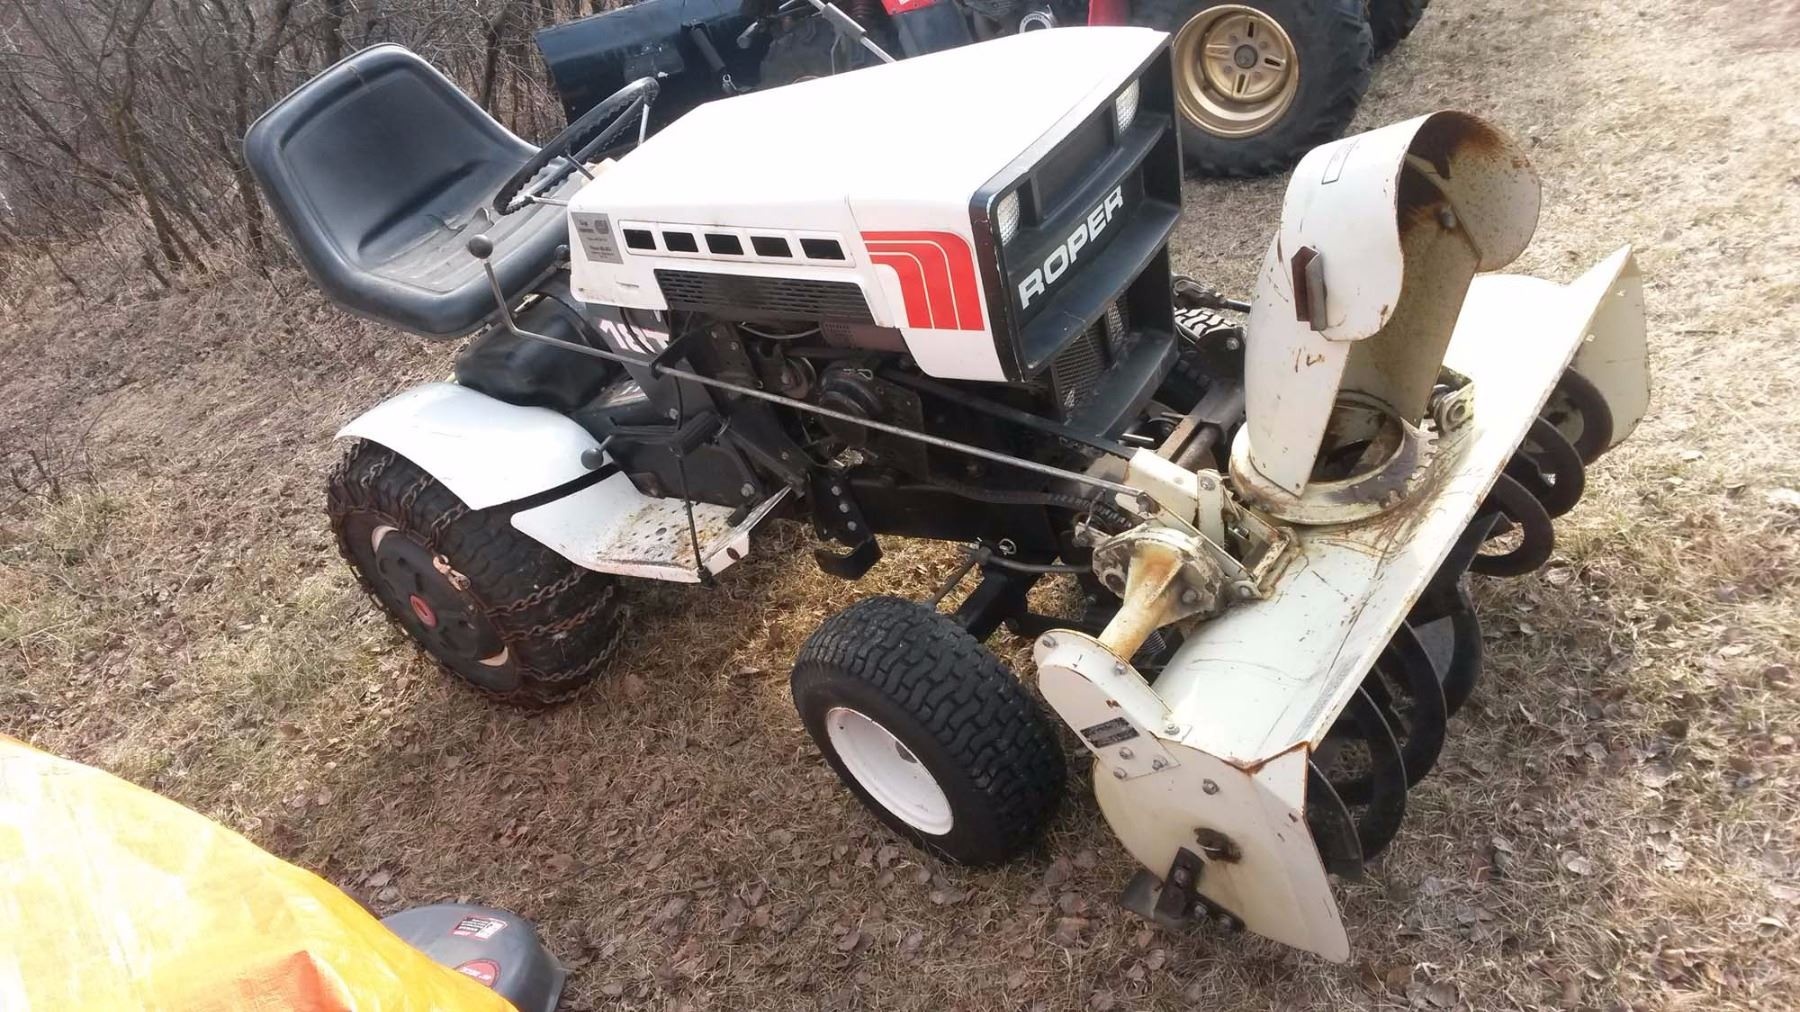 Old Roper Lawn Tractor Wiring Schematics Diagrams Diagram For Mower 18t Riding With Snow Blower Attachment Running Rh Icollector Com Sears Garden